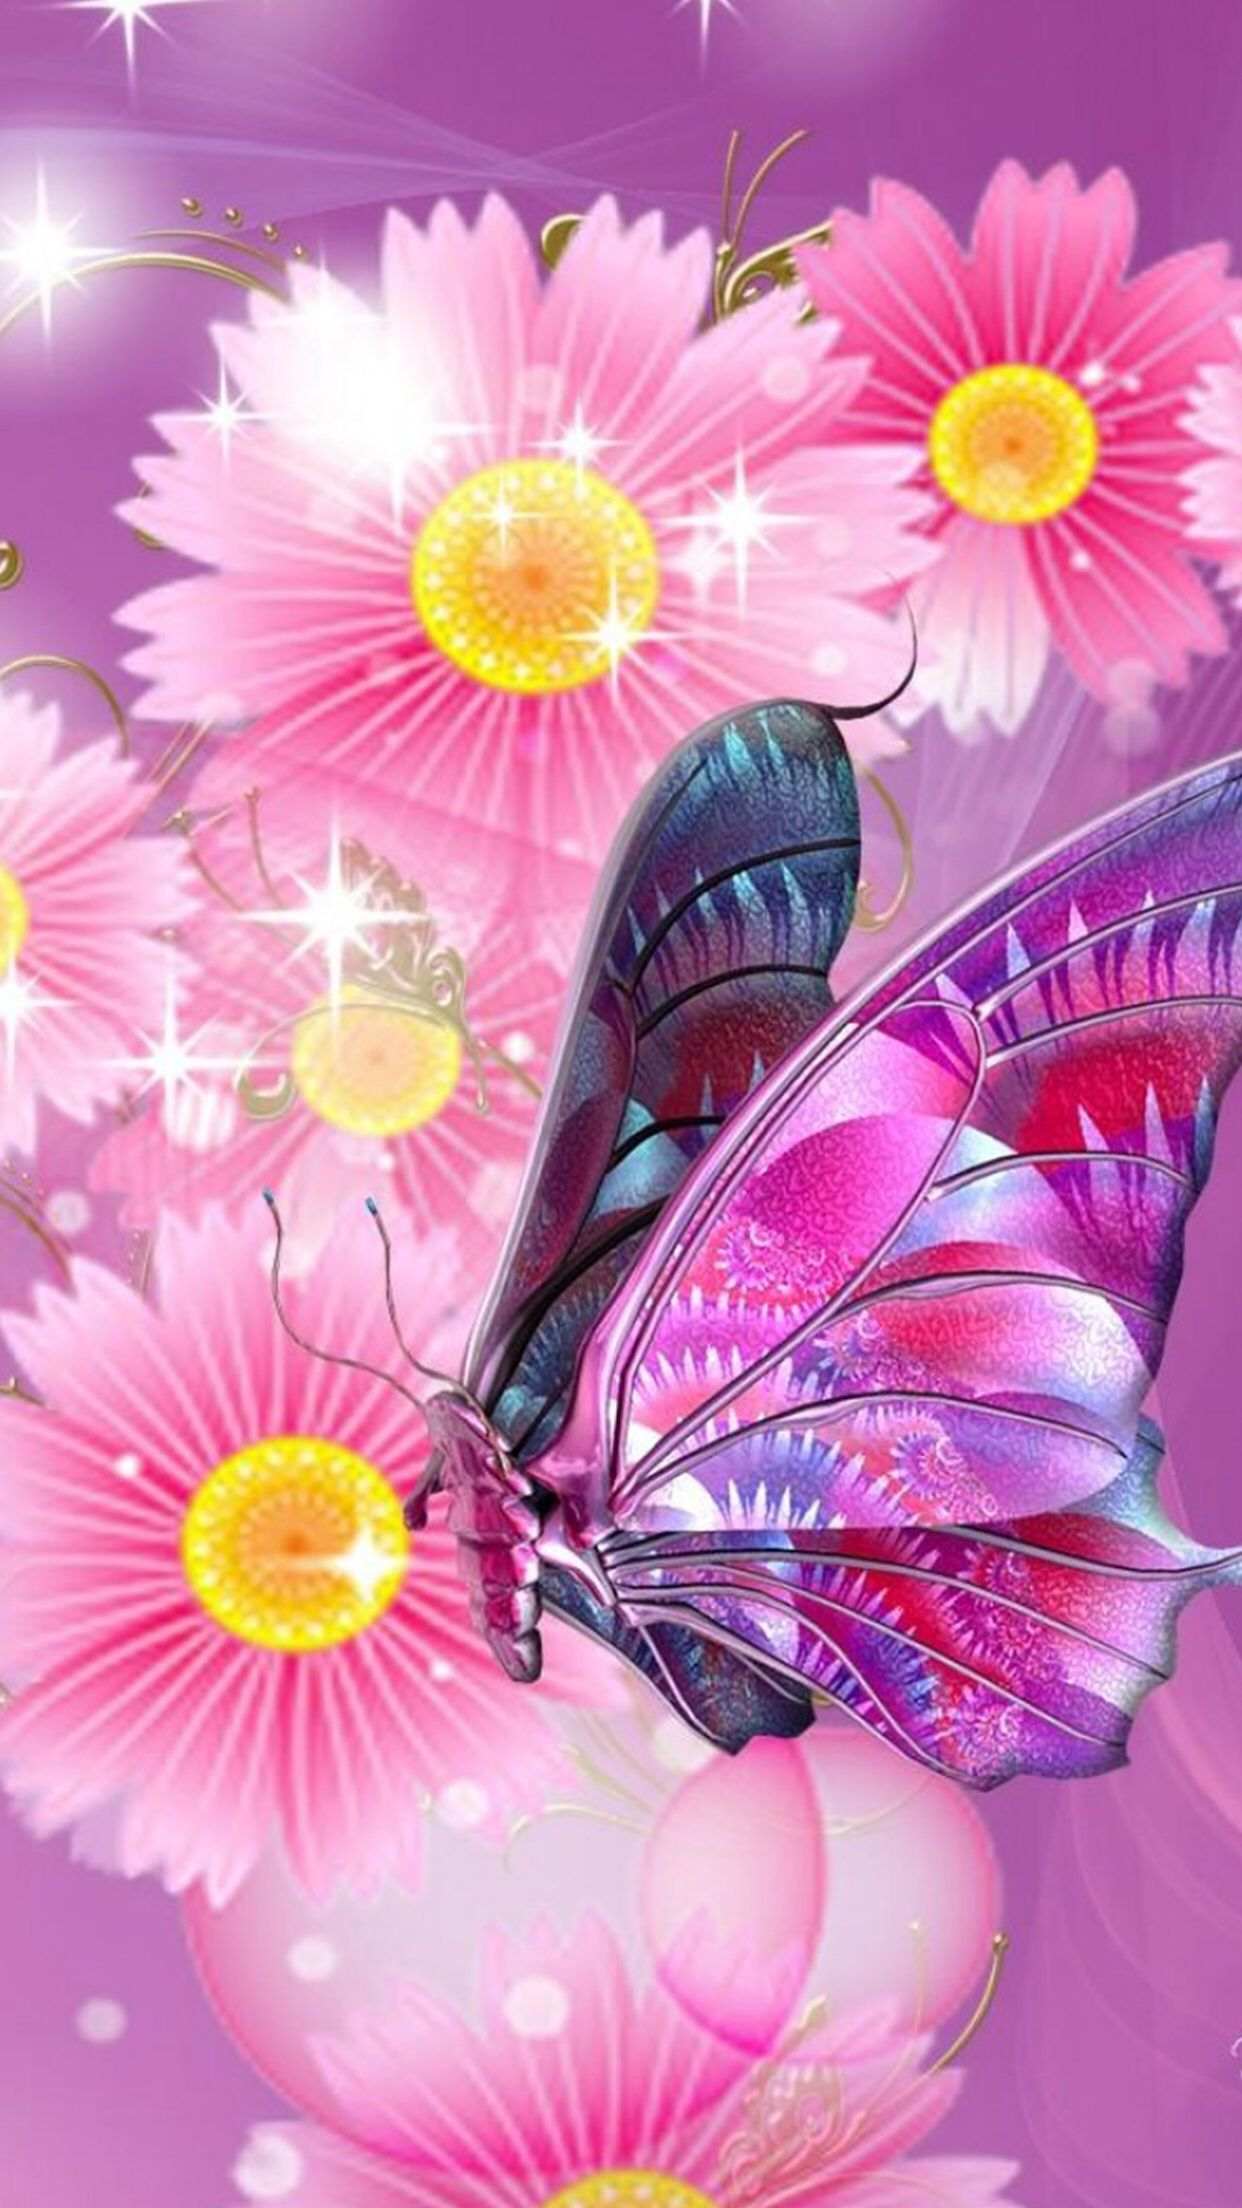 I Just Customized My Lock Screen Using This App This App Has Amazing Collection Of Pi Butterfly Wallpaper Beautiful Butterflies Art Butterfly Wallpaper Iphone